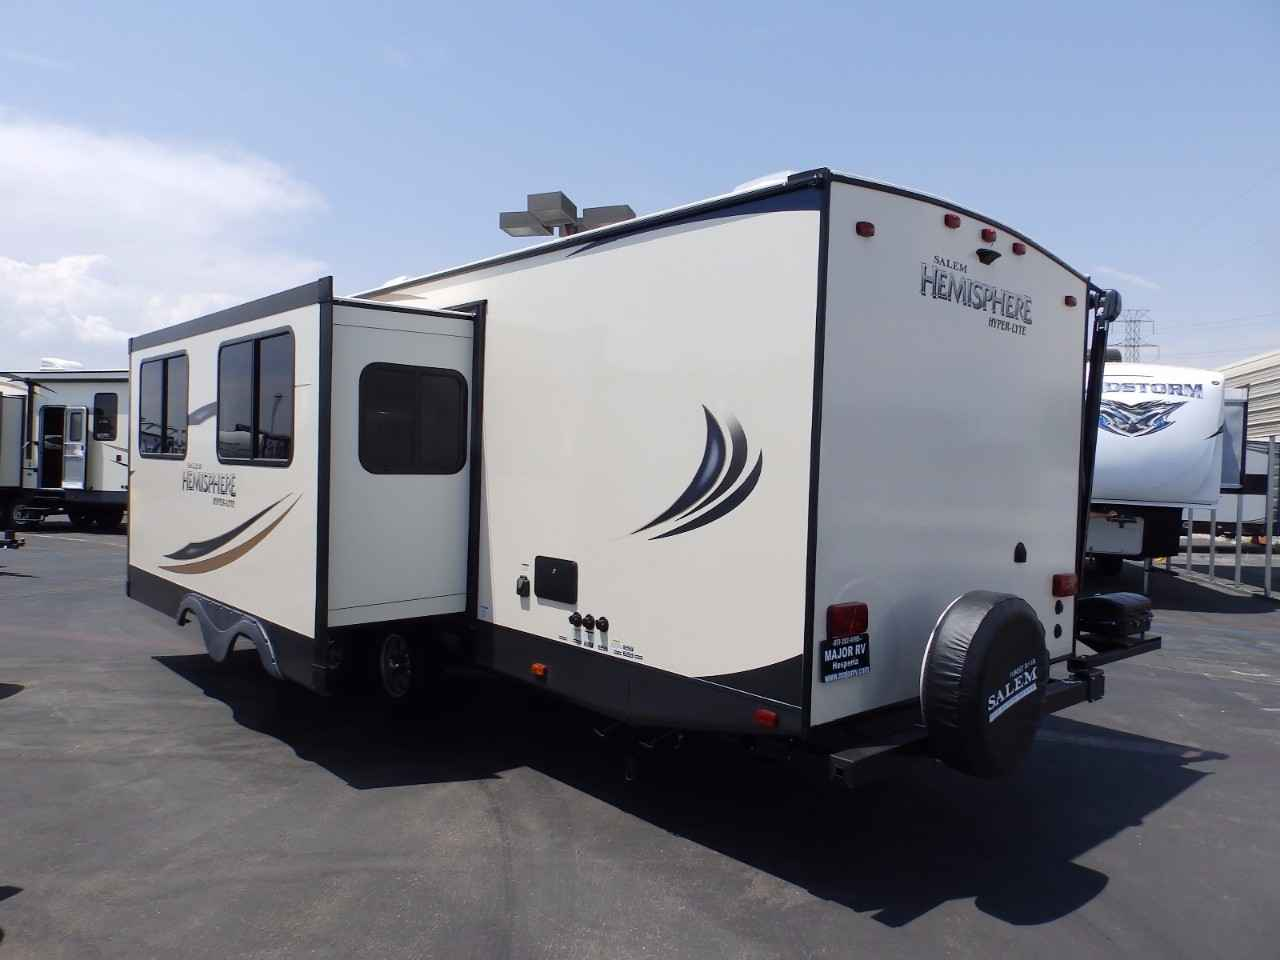 2018 new forest river salem hemisphere 26rbhl 1 slide for 2 bathroom travel trailer